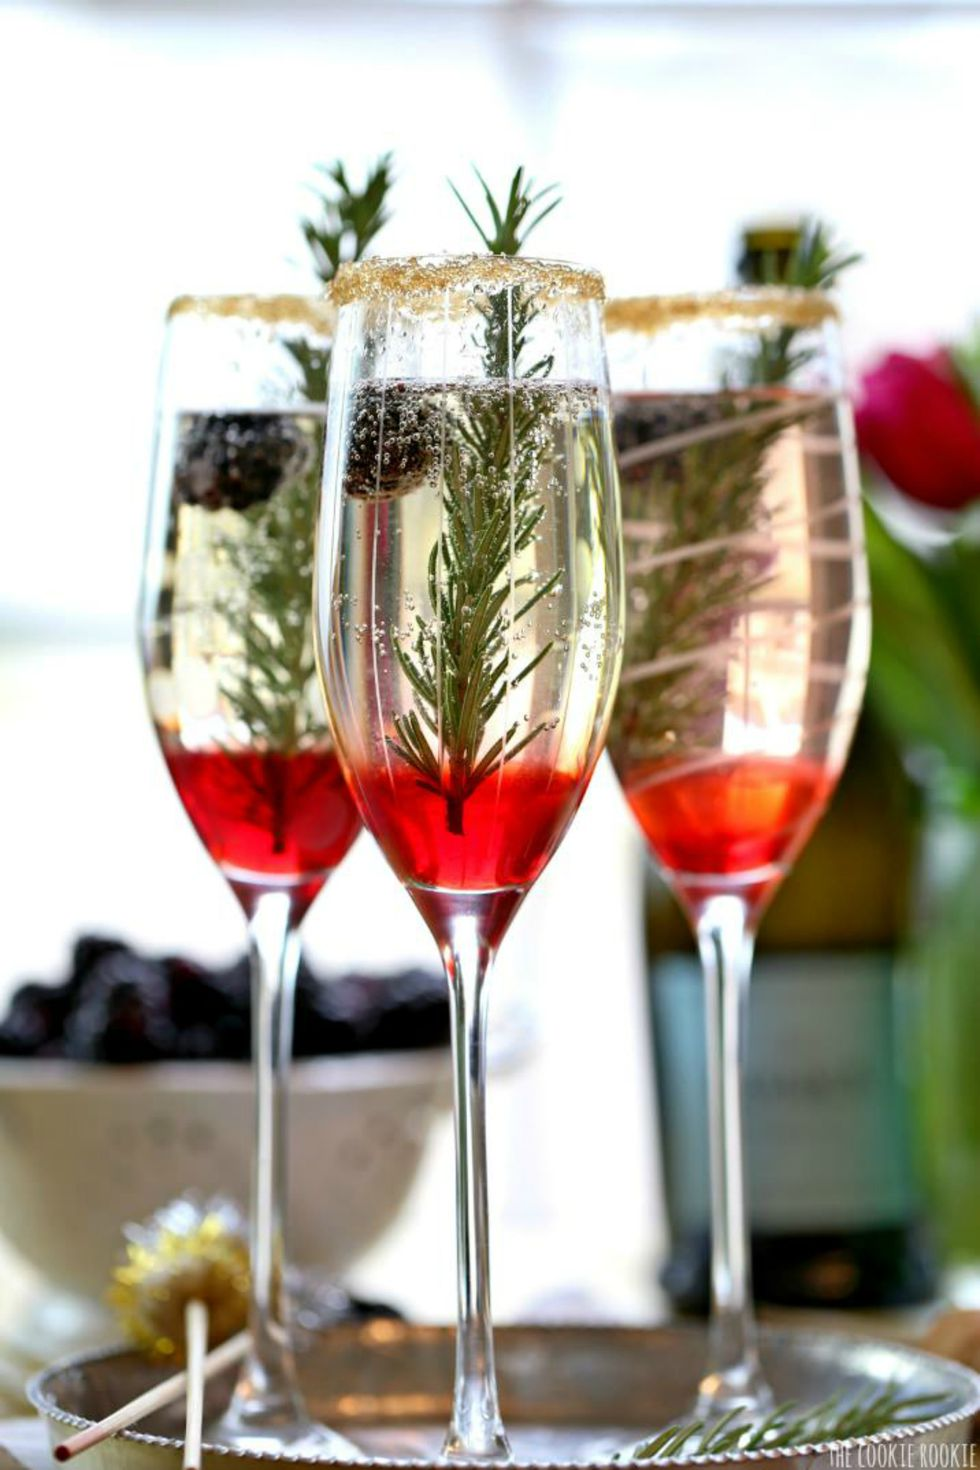 Bubbly champagne cocktail with a fresh sprig of rosemary.